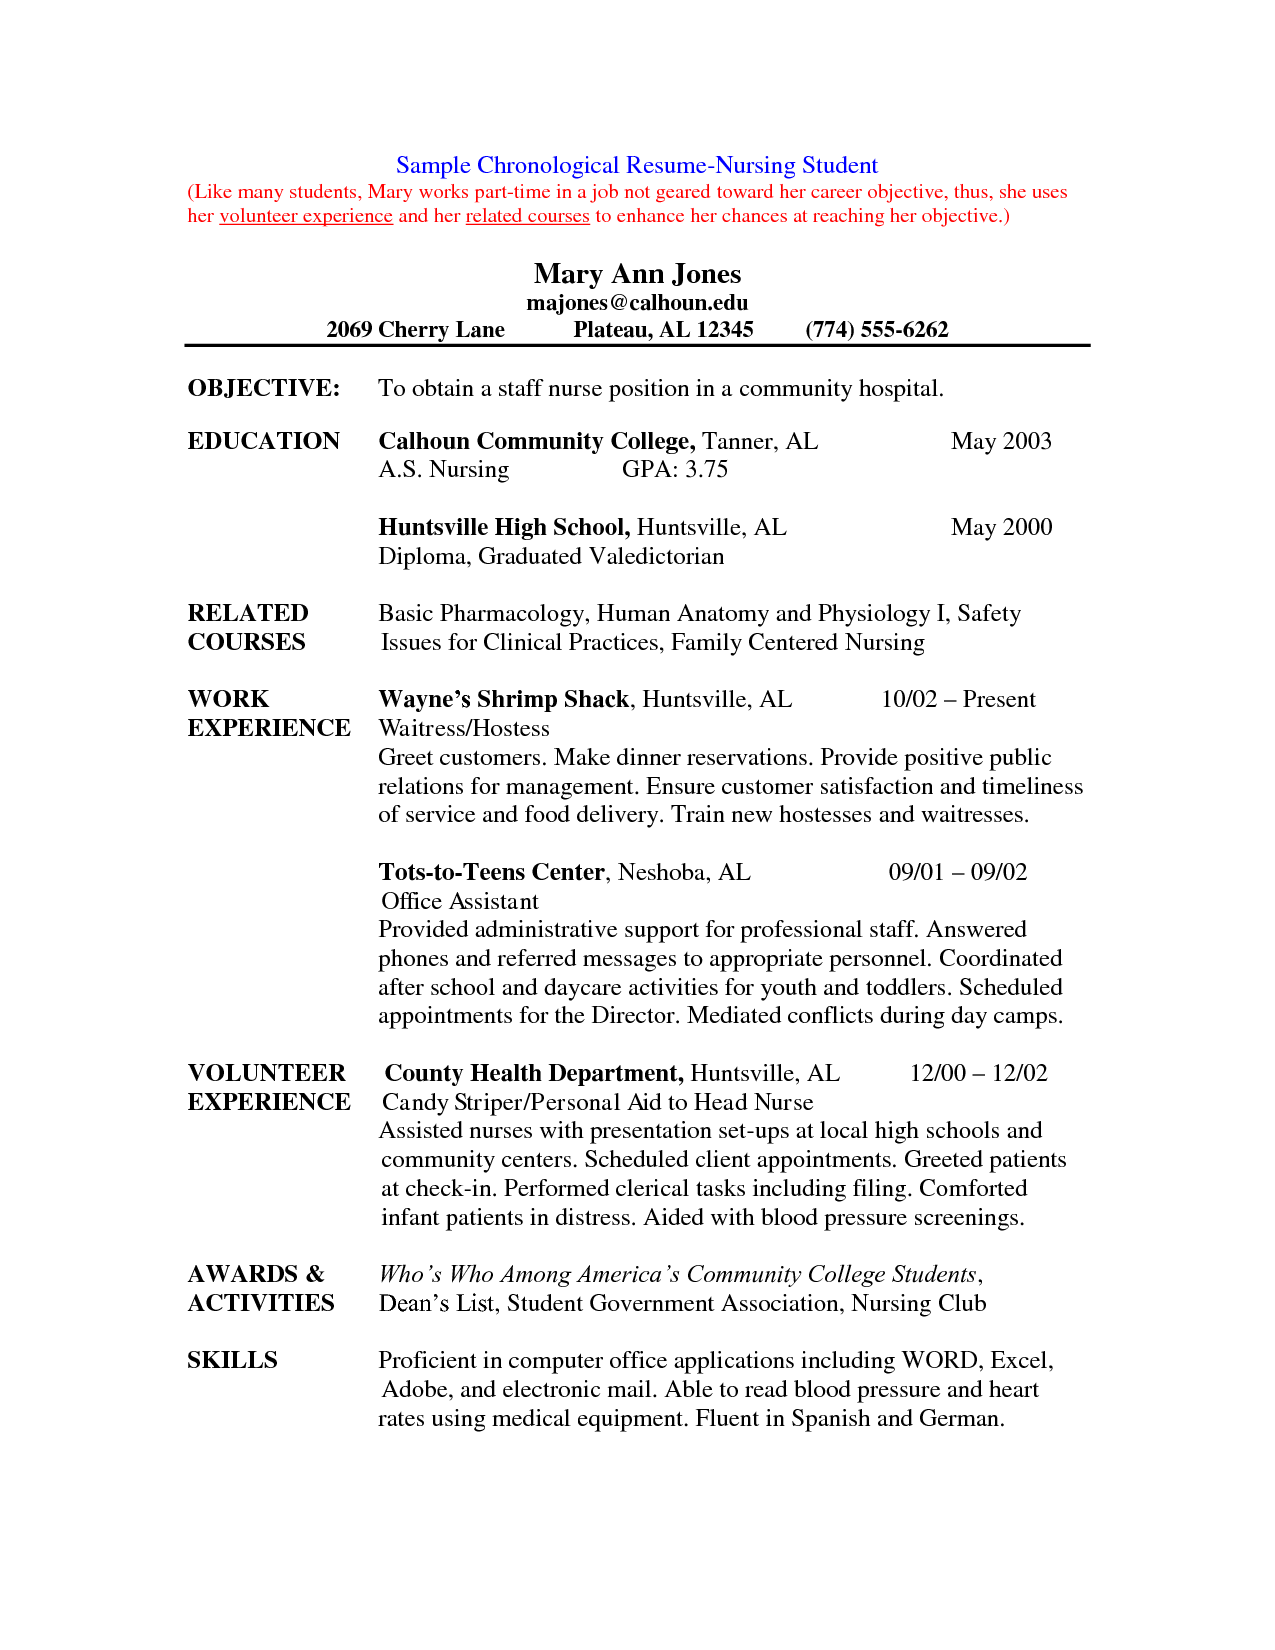 Sample Rn Resume Sample New Rn Resume  Nursing Student Resume  Nursing